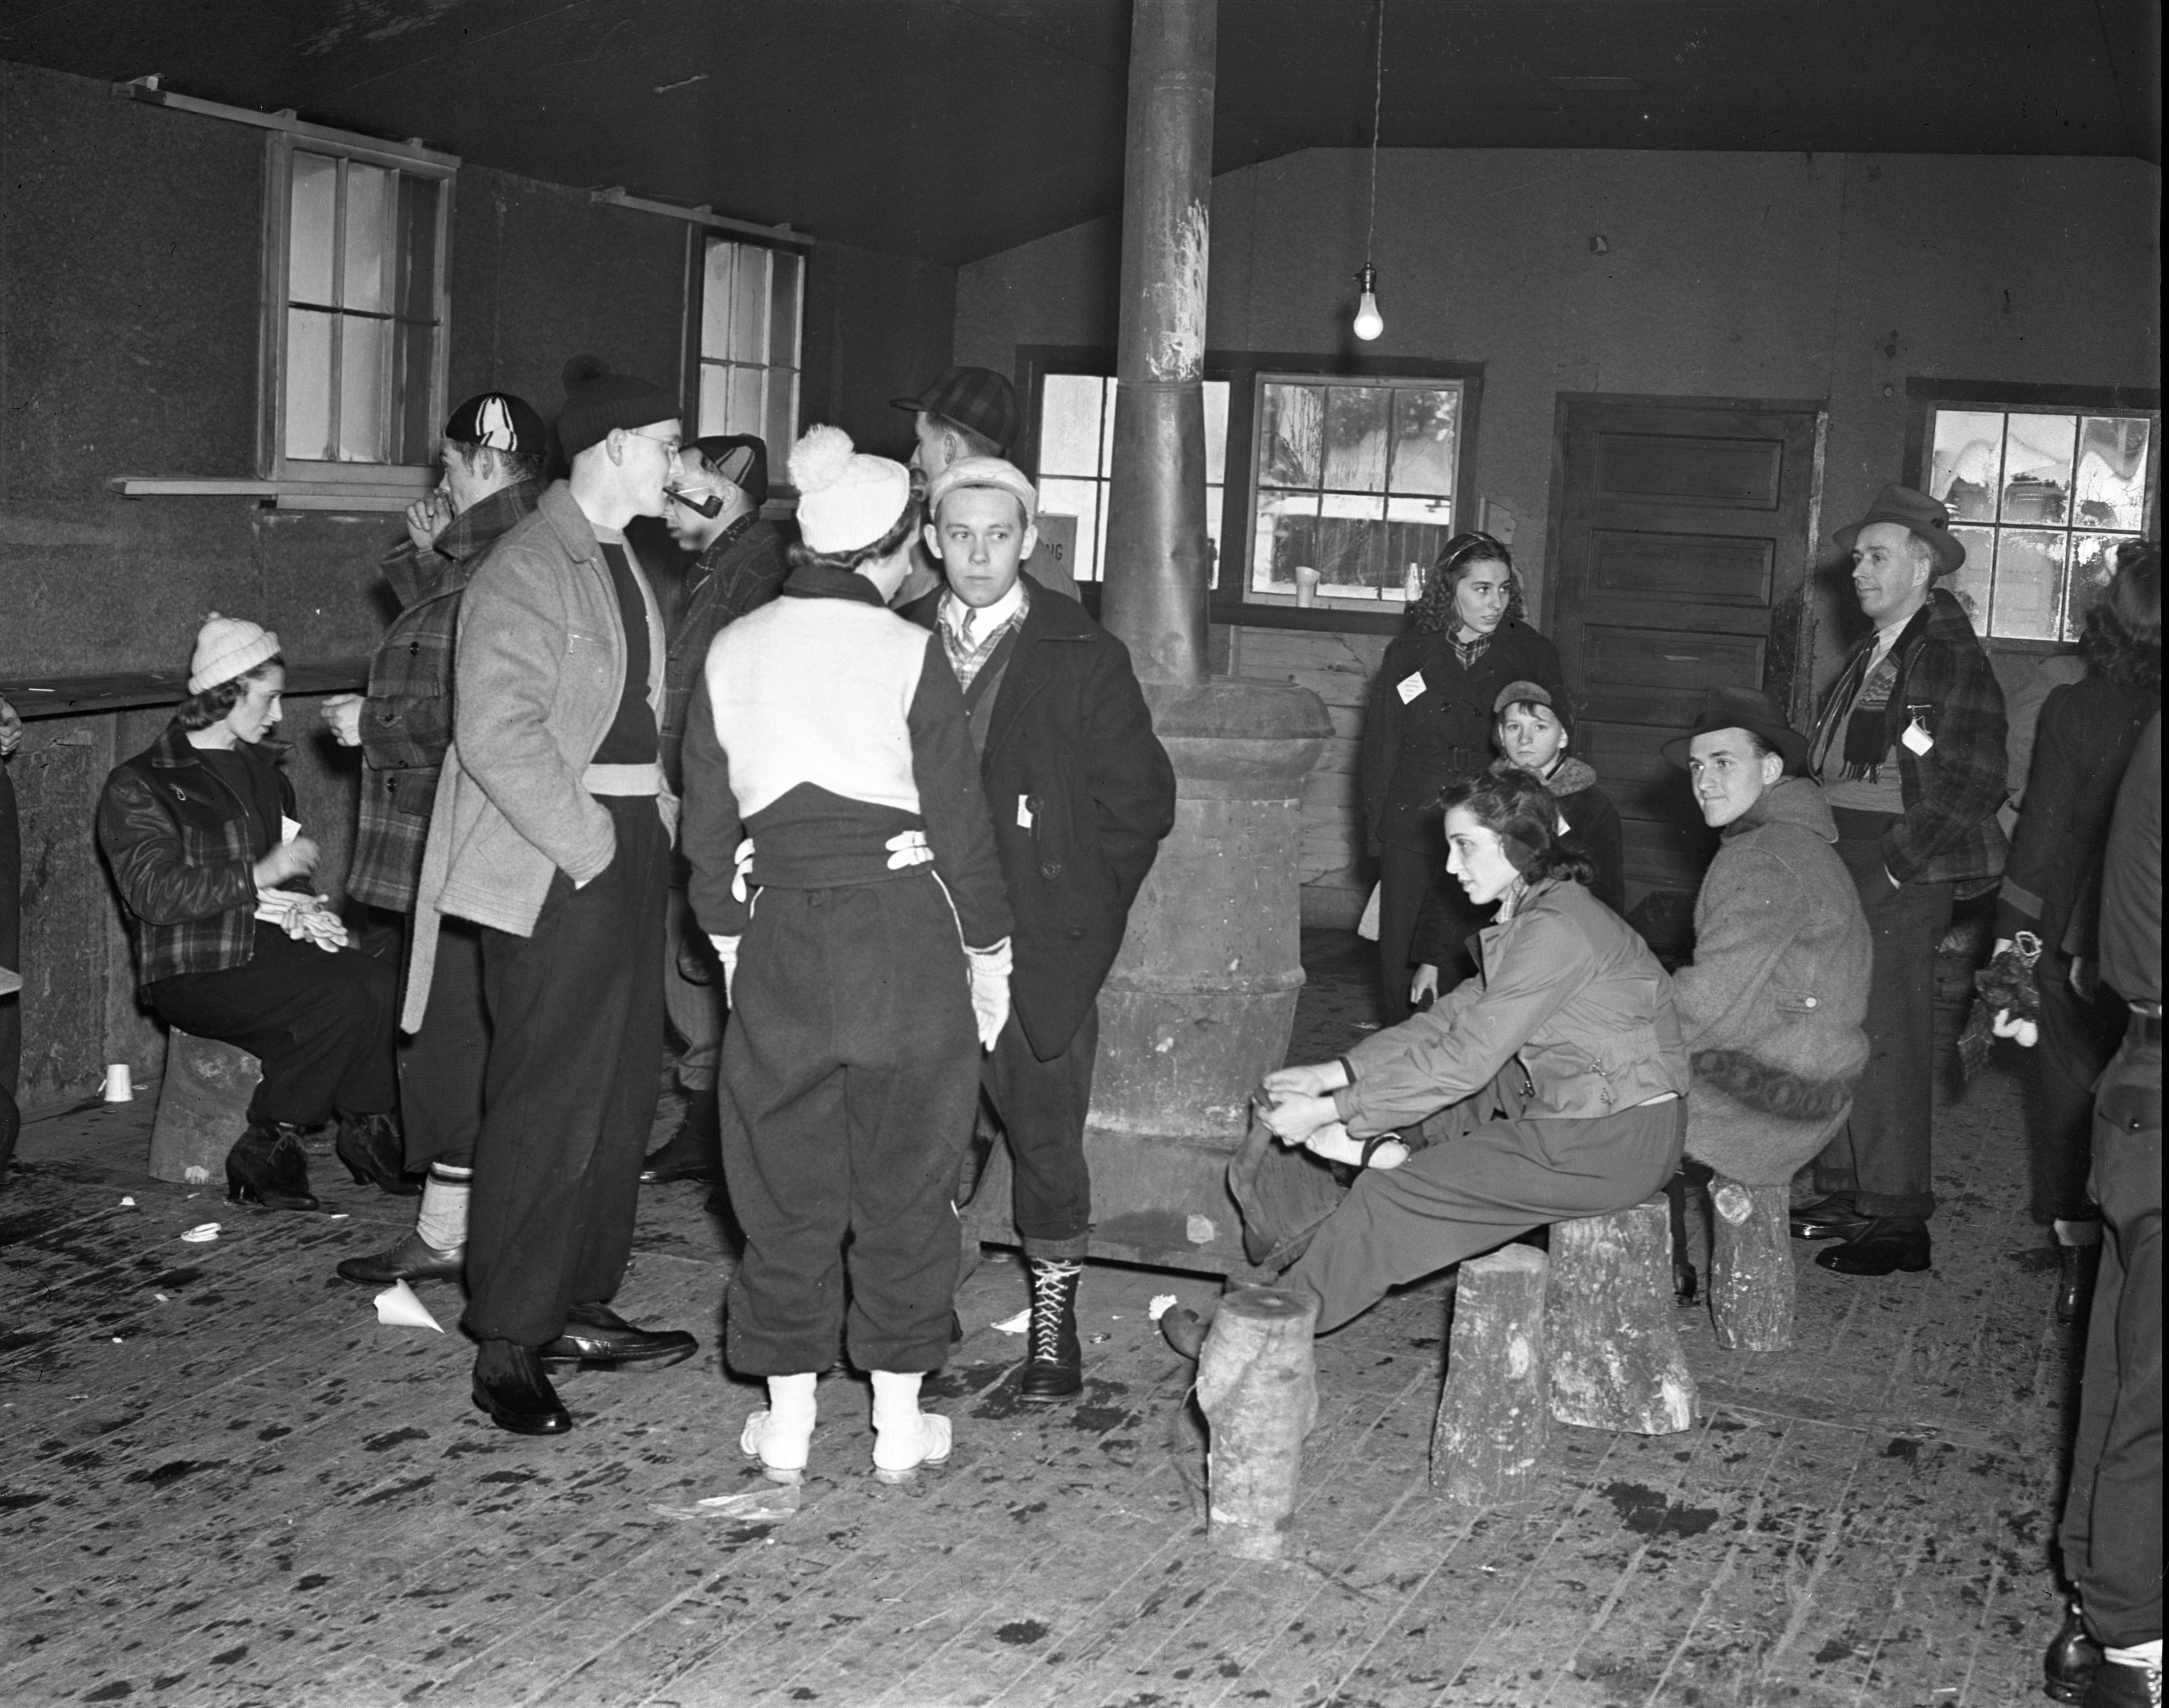 Inside A Warming House At Grayling Winter Sports Park, January 1940 image